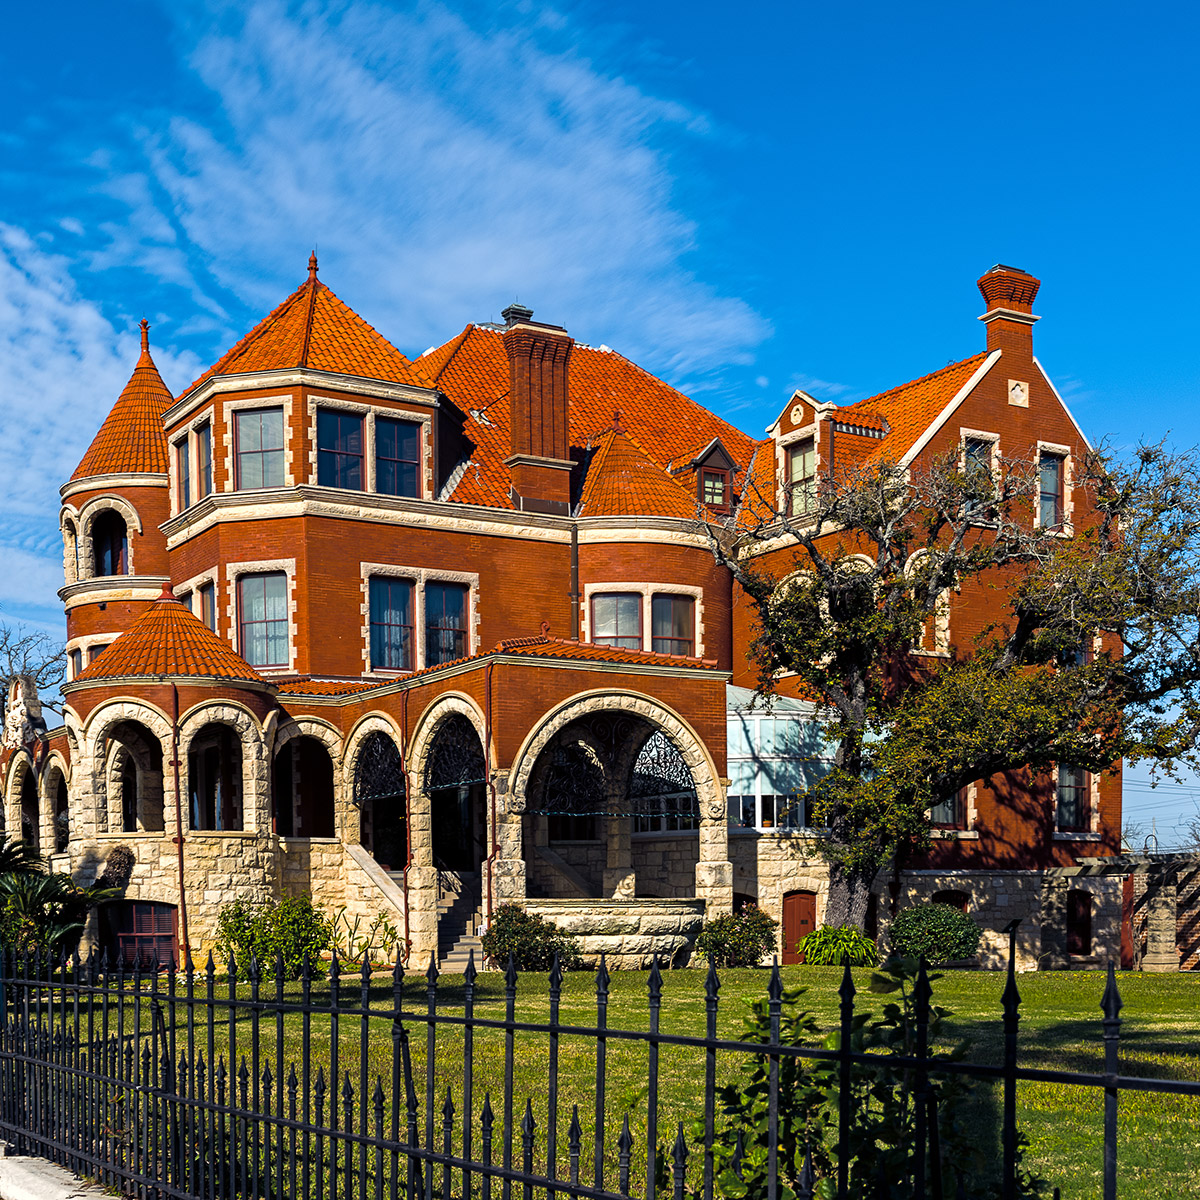 GALVESTON ISLAND PASS | Buy 4 Attractions and SAVE 40%